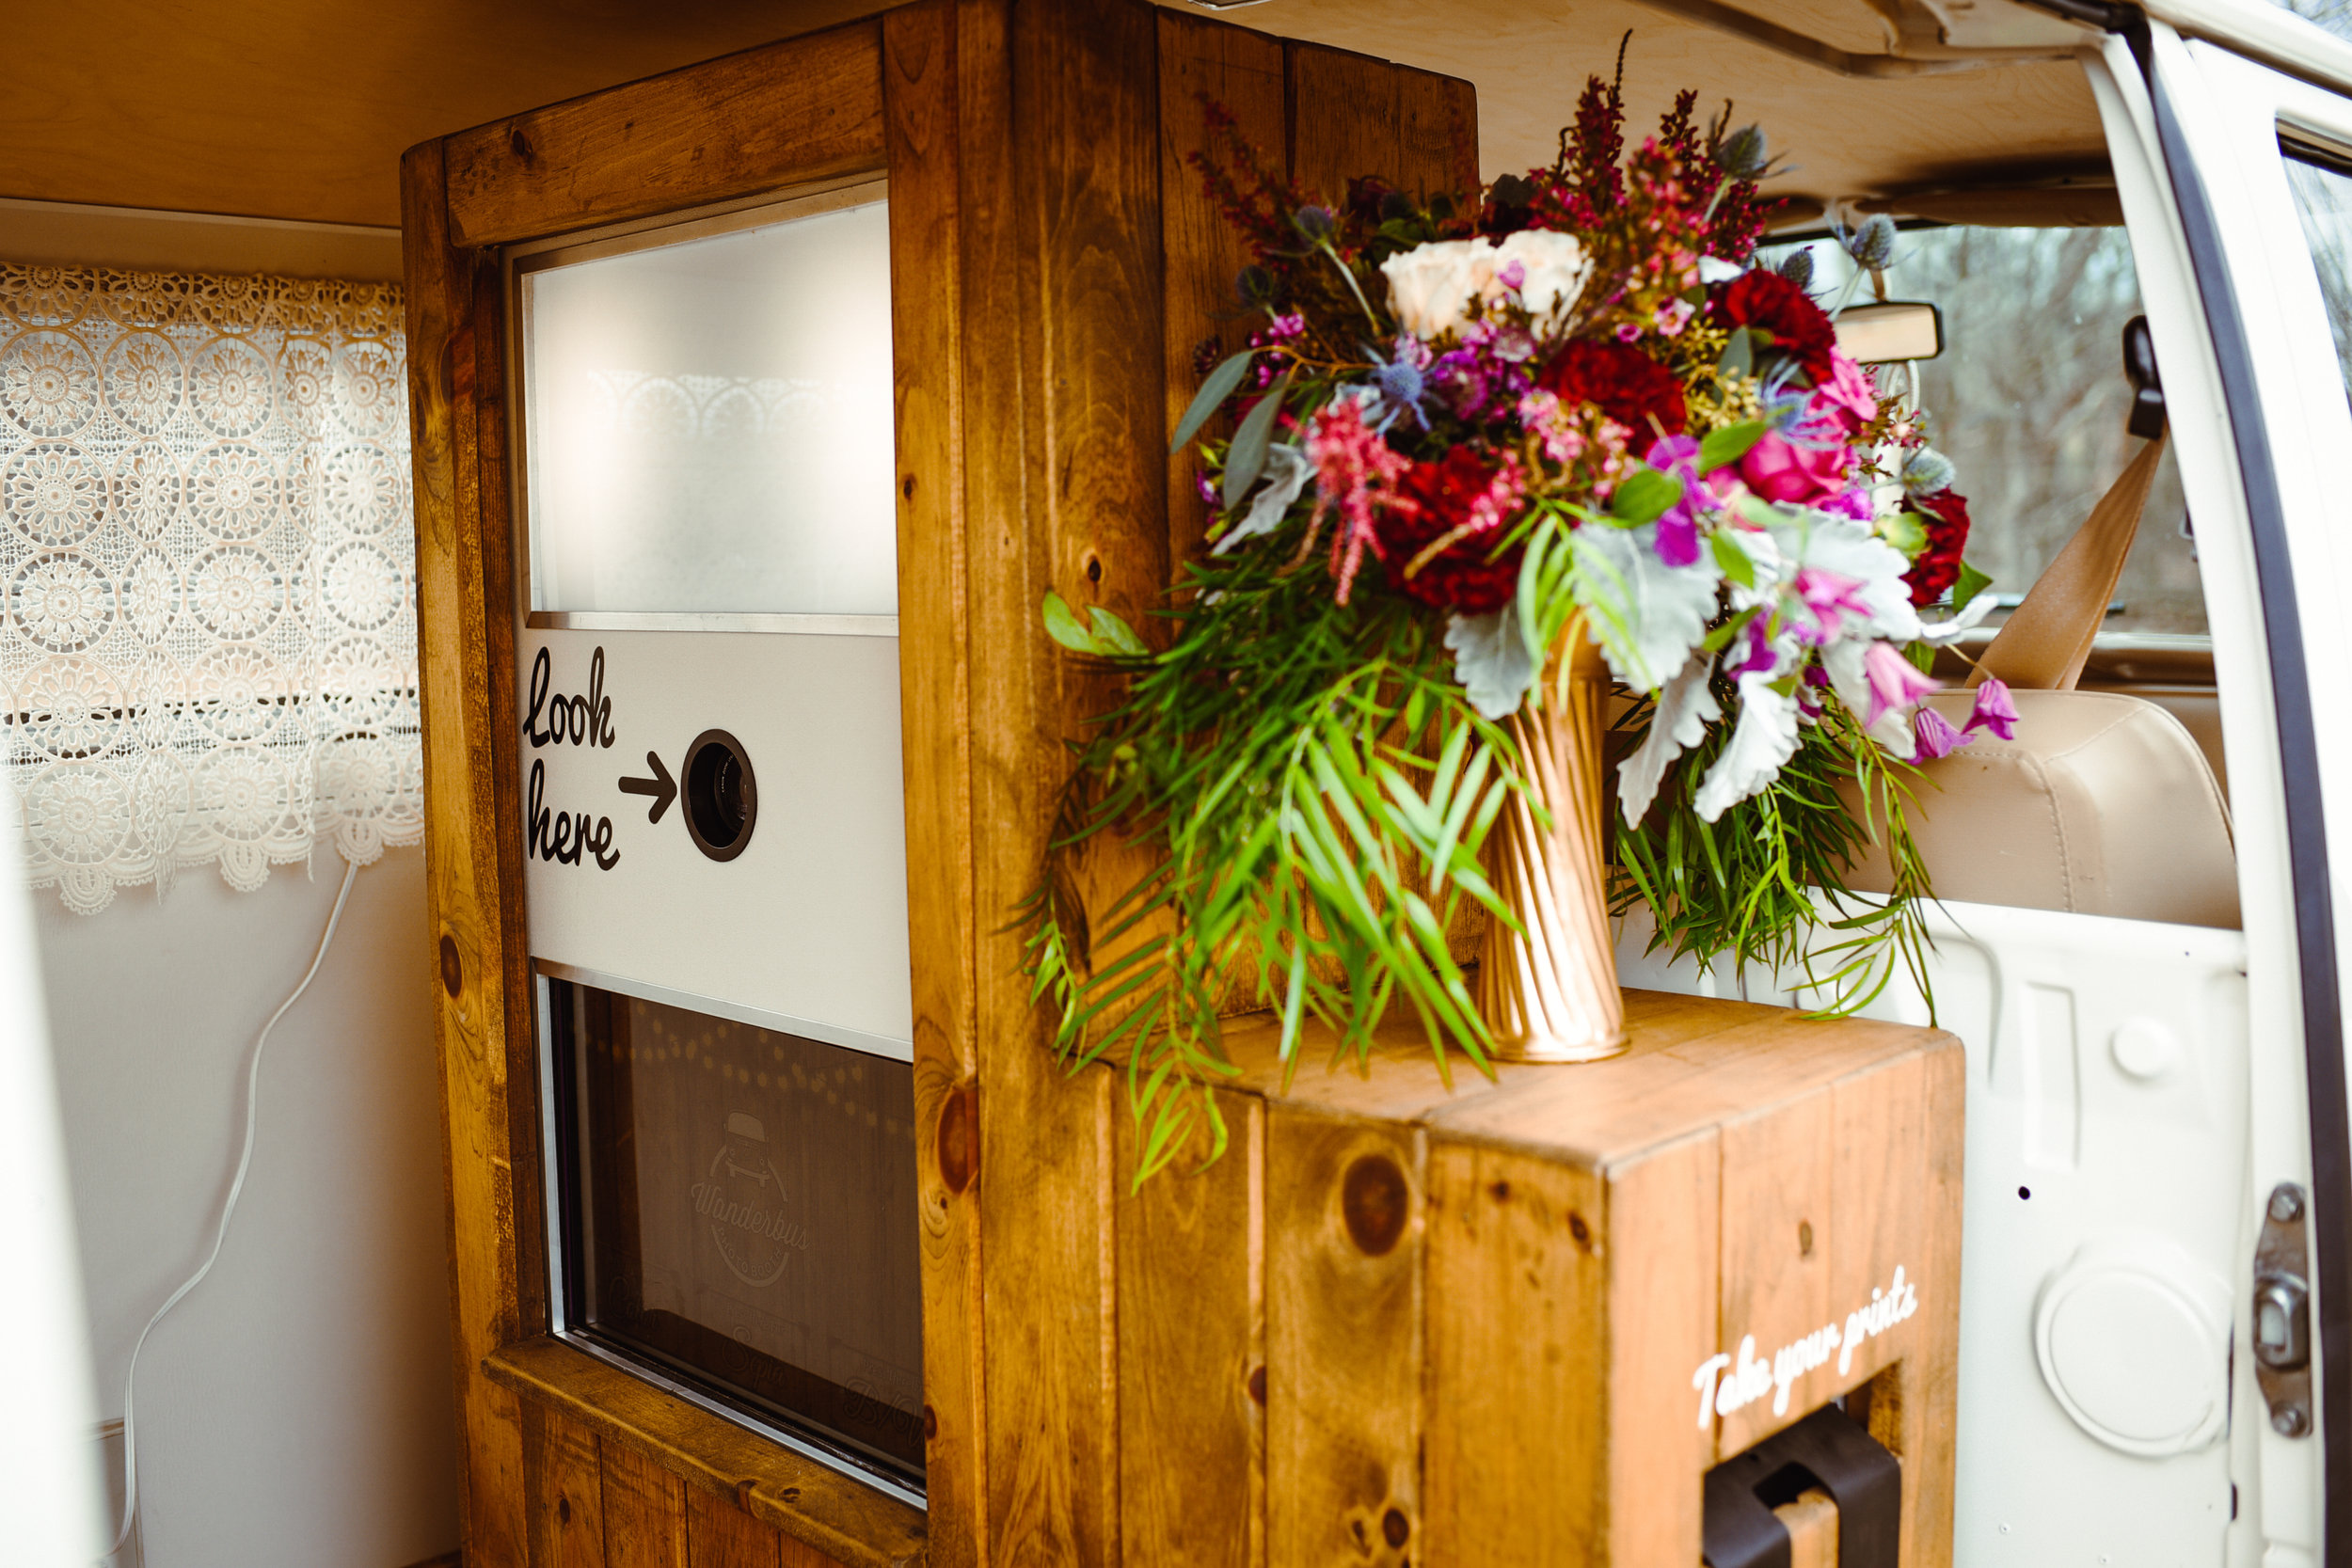 Phoebe's Photo Booth - Phoebe's photo booth is nestled inside a custom built rustic wood cabinet.